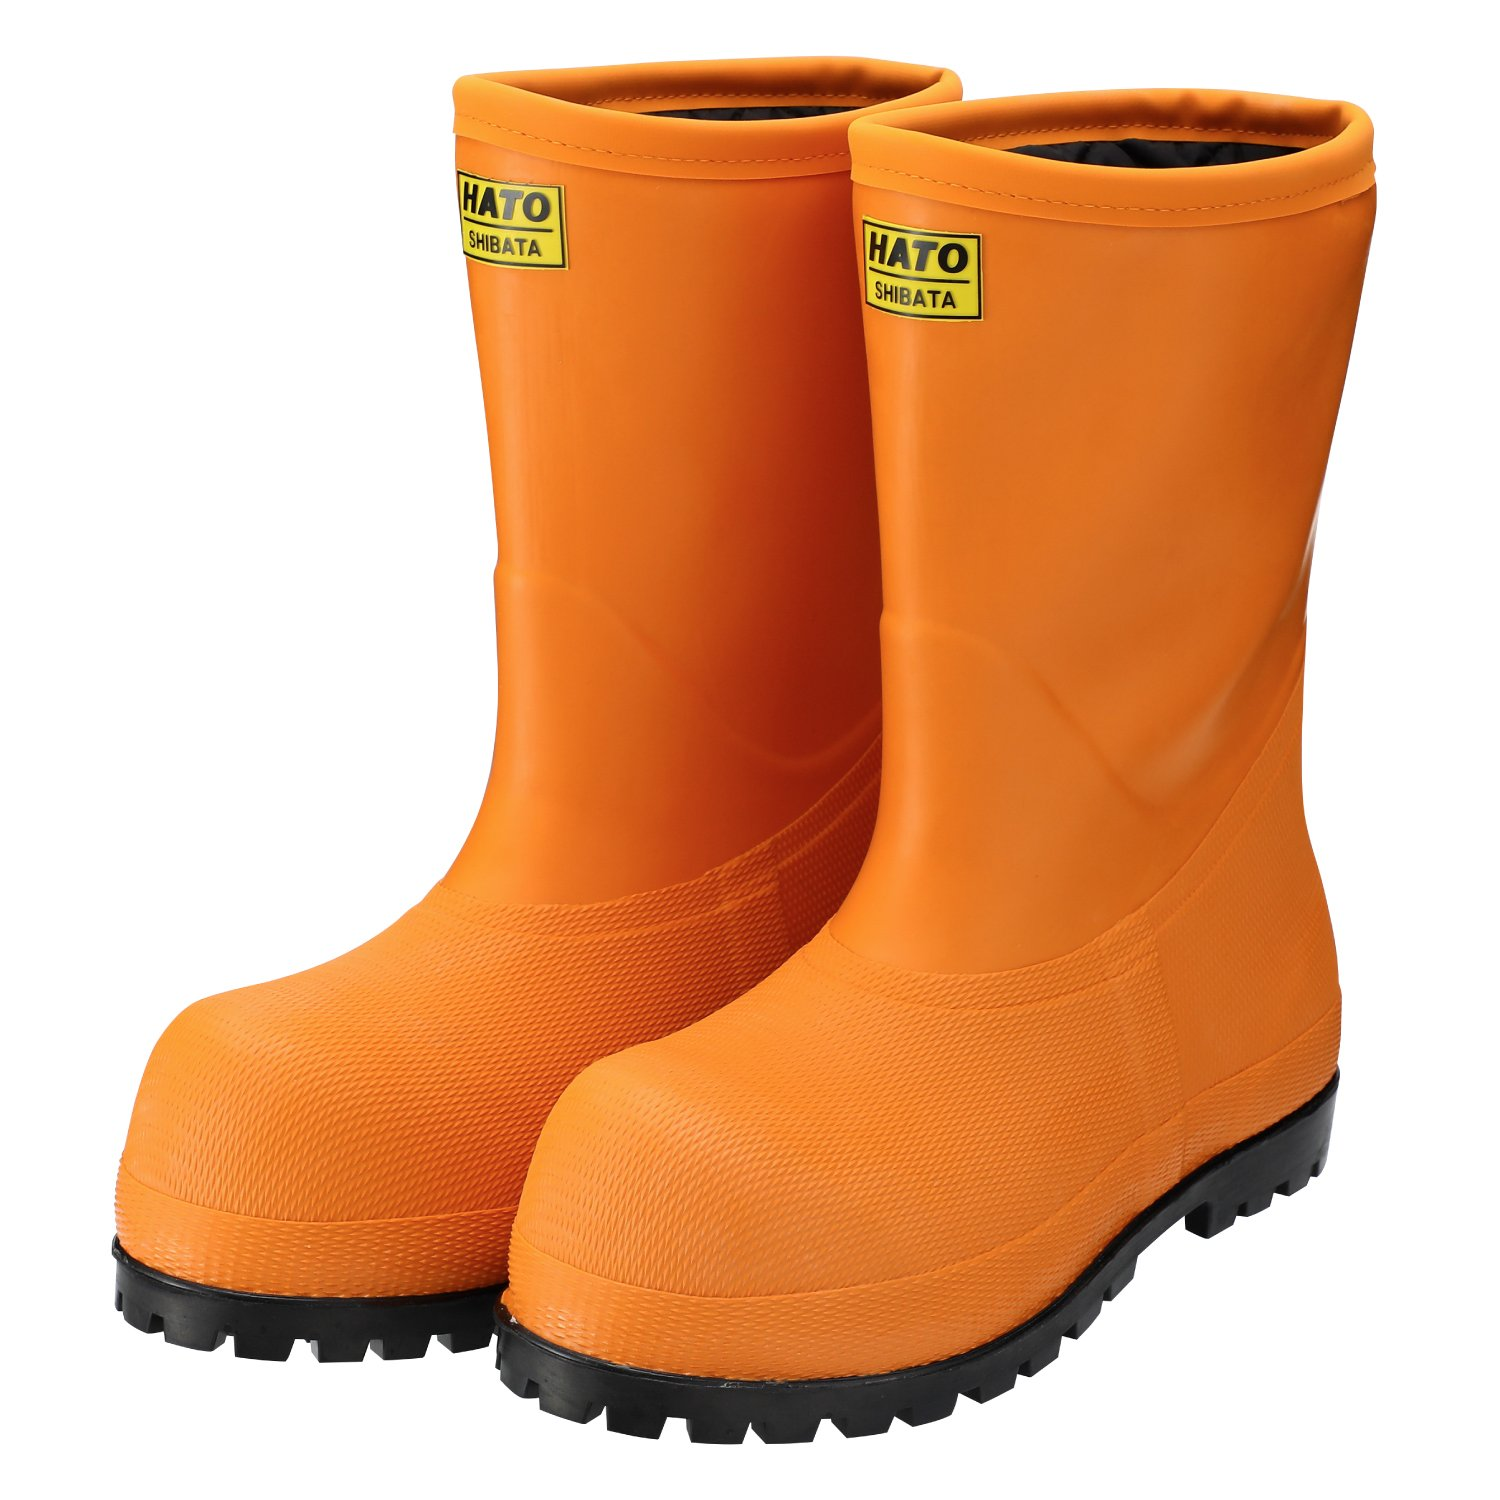 NR012 Cold Resistance Rubber Boots -60℃/NR012 冷蔵庫-60℃ B07DR93PXT 28.0 cm, ほんものやUSA:3c1235ae --- adfun.jp